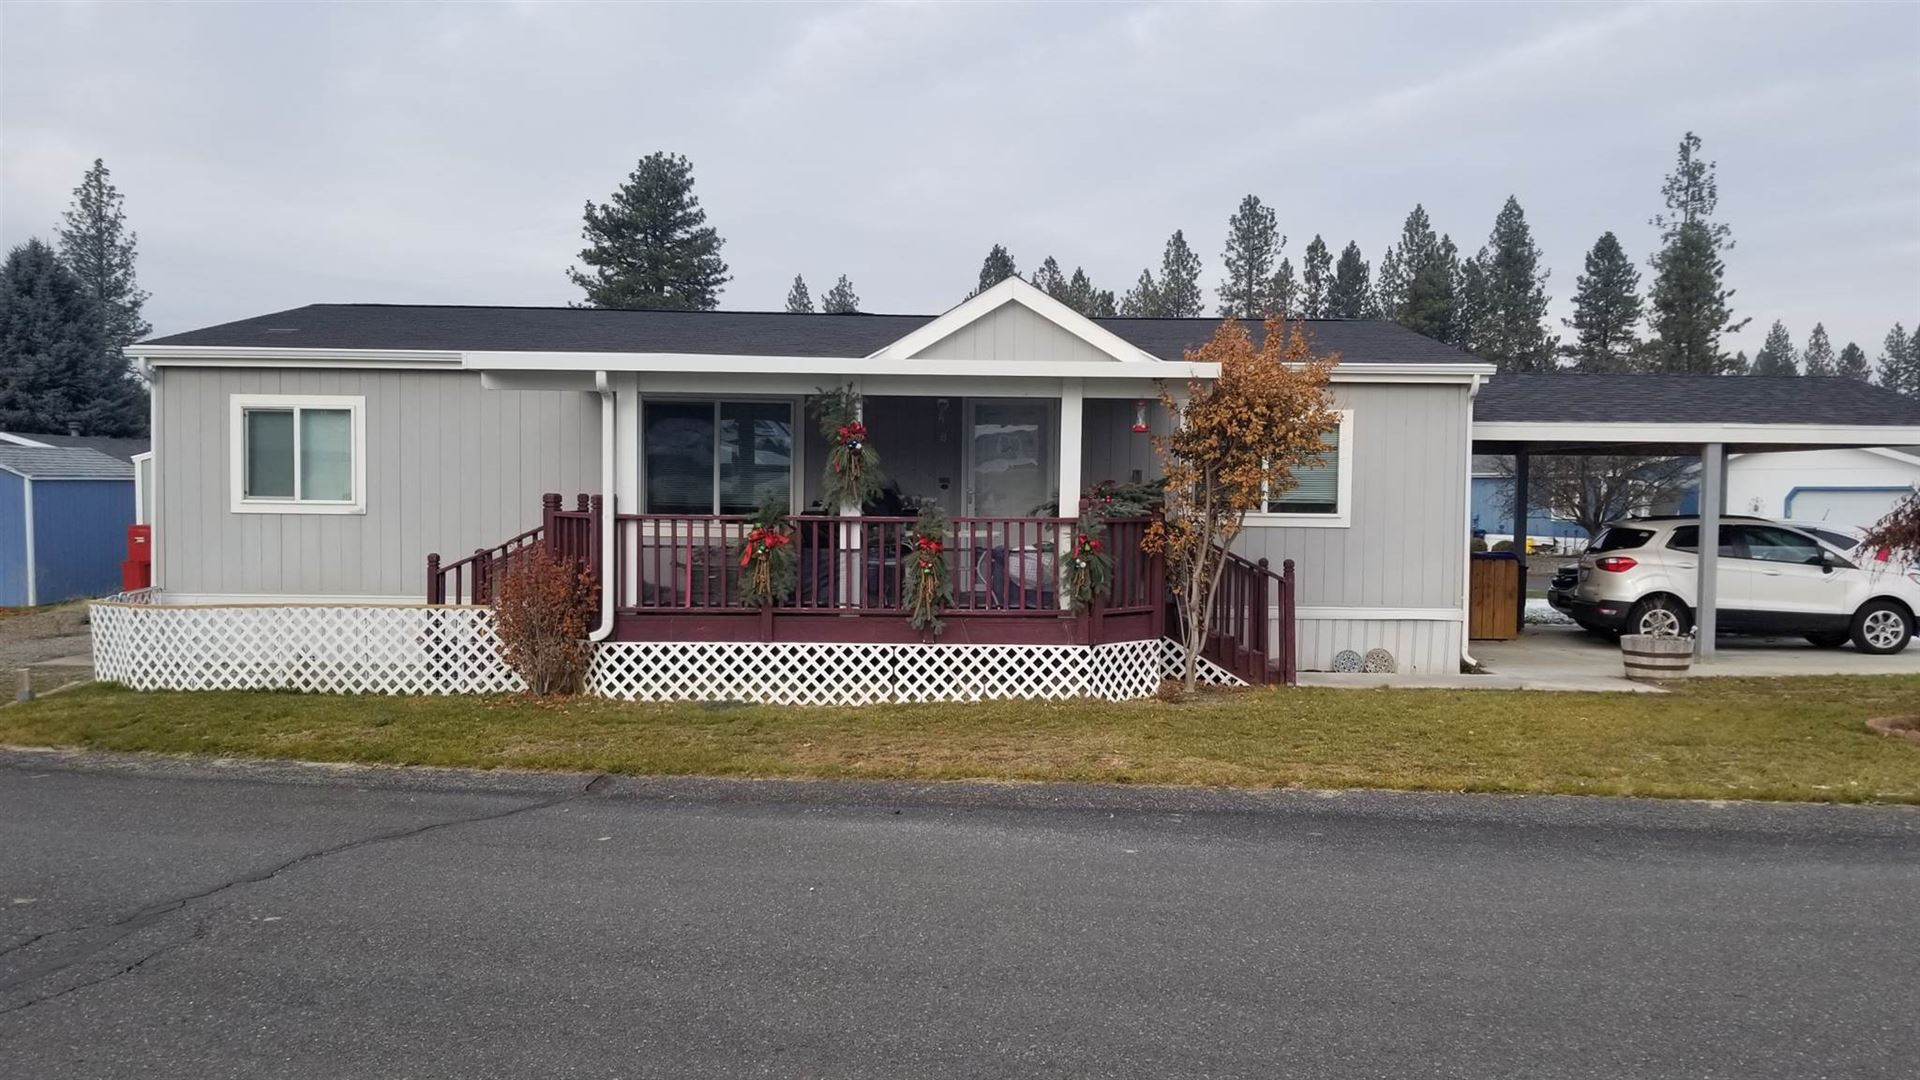 14619 N Chattanooga Ln, Mead, WA 99021 - #: 202025742